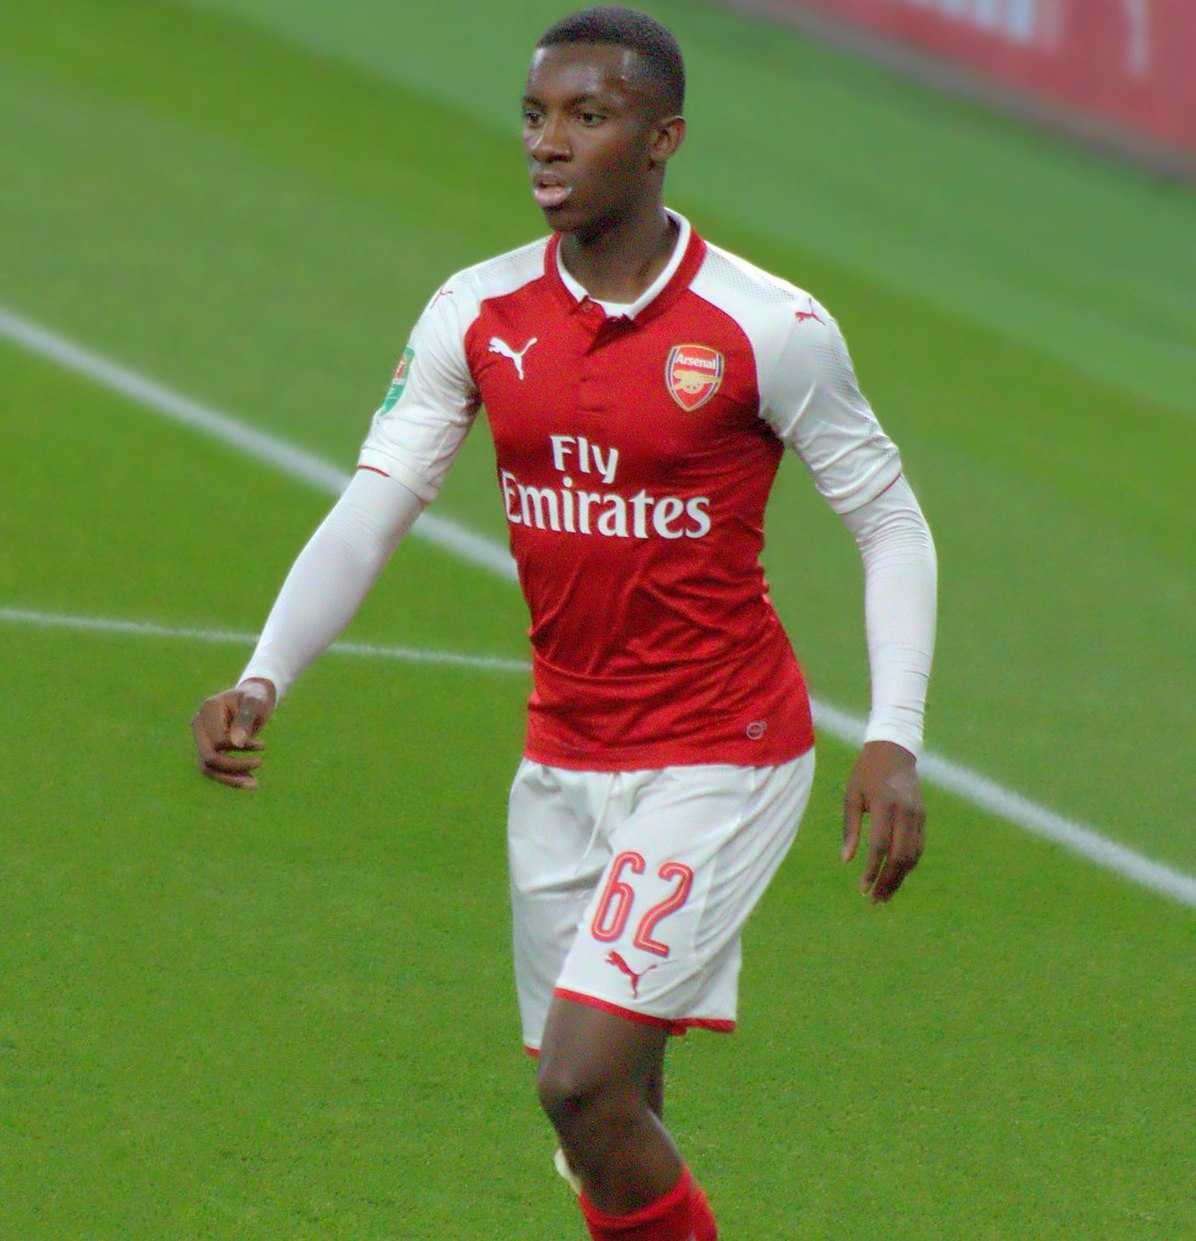 Eddie Nketiah Nationality